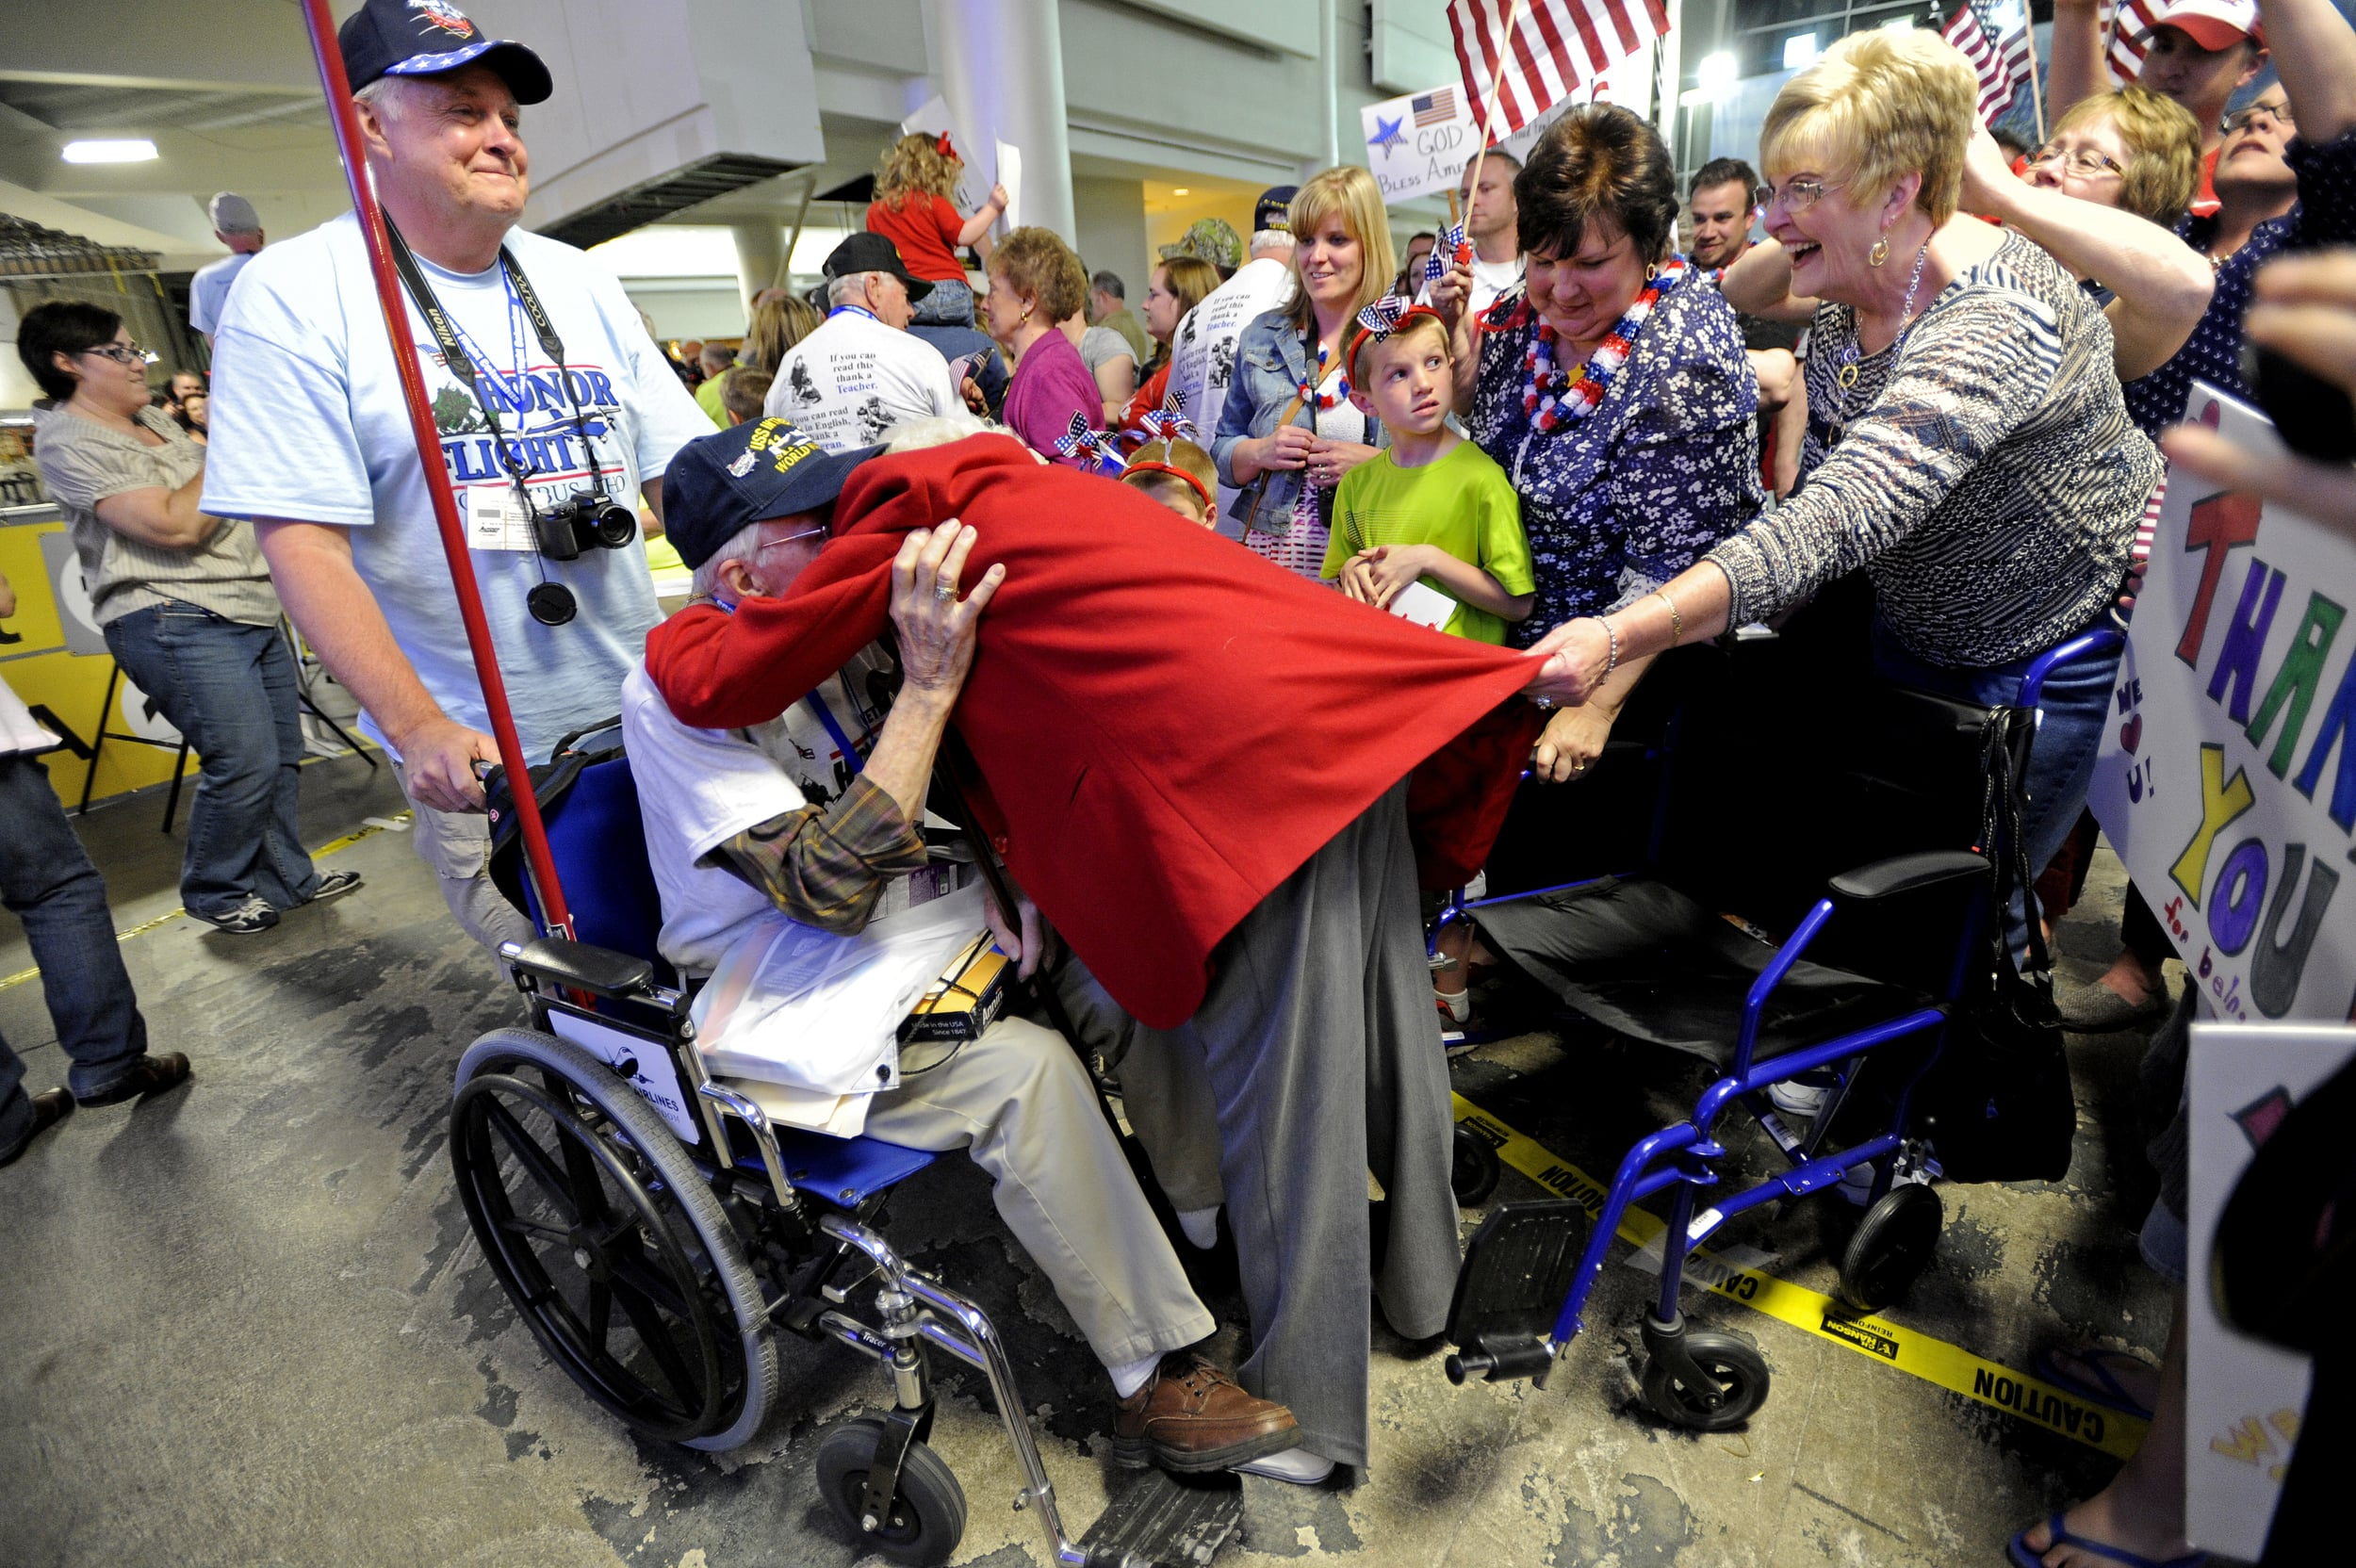 An eager wife pulled herself out of her wheelchair and into her husbands arms in a heartwarming embrace after the Honor Flight returned to Columbus. The veterans disembarked from the plane at Columbus International Airport close to 9:30 p.m. after getting to the airport before 5:30 a.m. in the morning to begin their adventure to the biggest surprise of the day- between 400 and 600 of their closest family and friends waiting to give them a hero's welcome home.